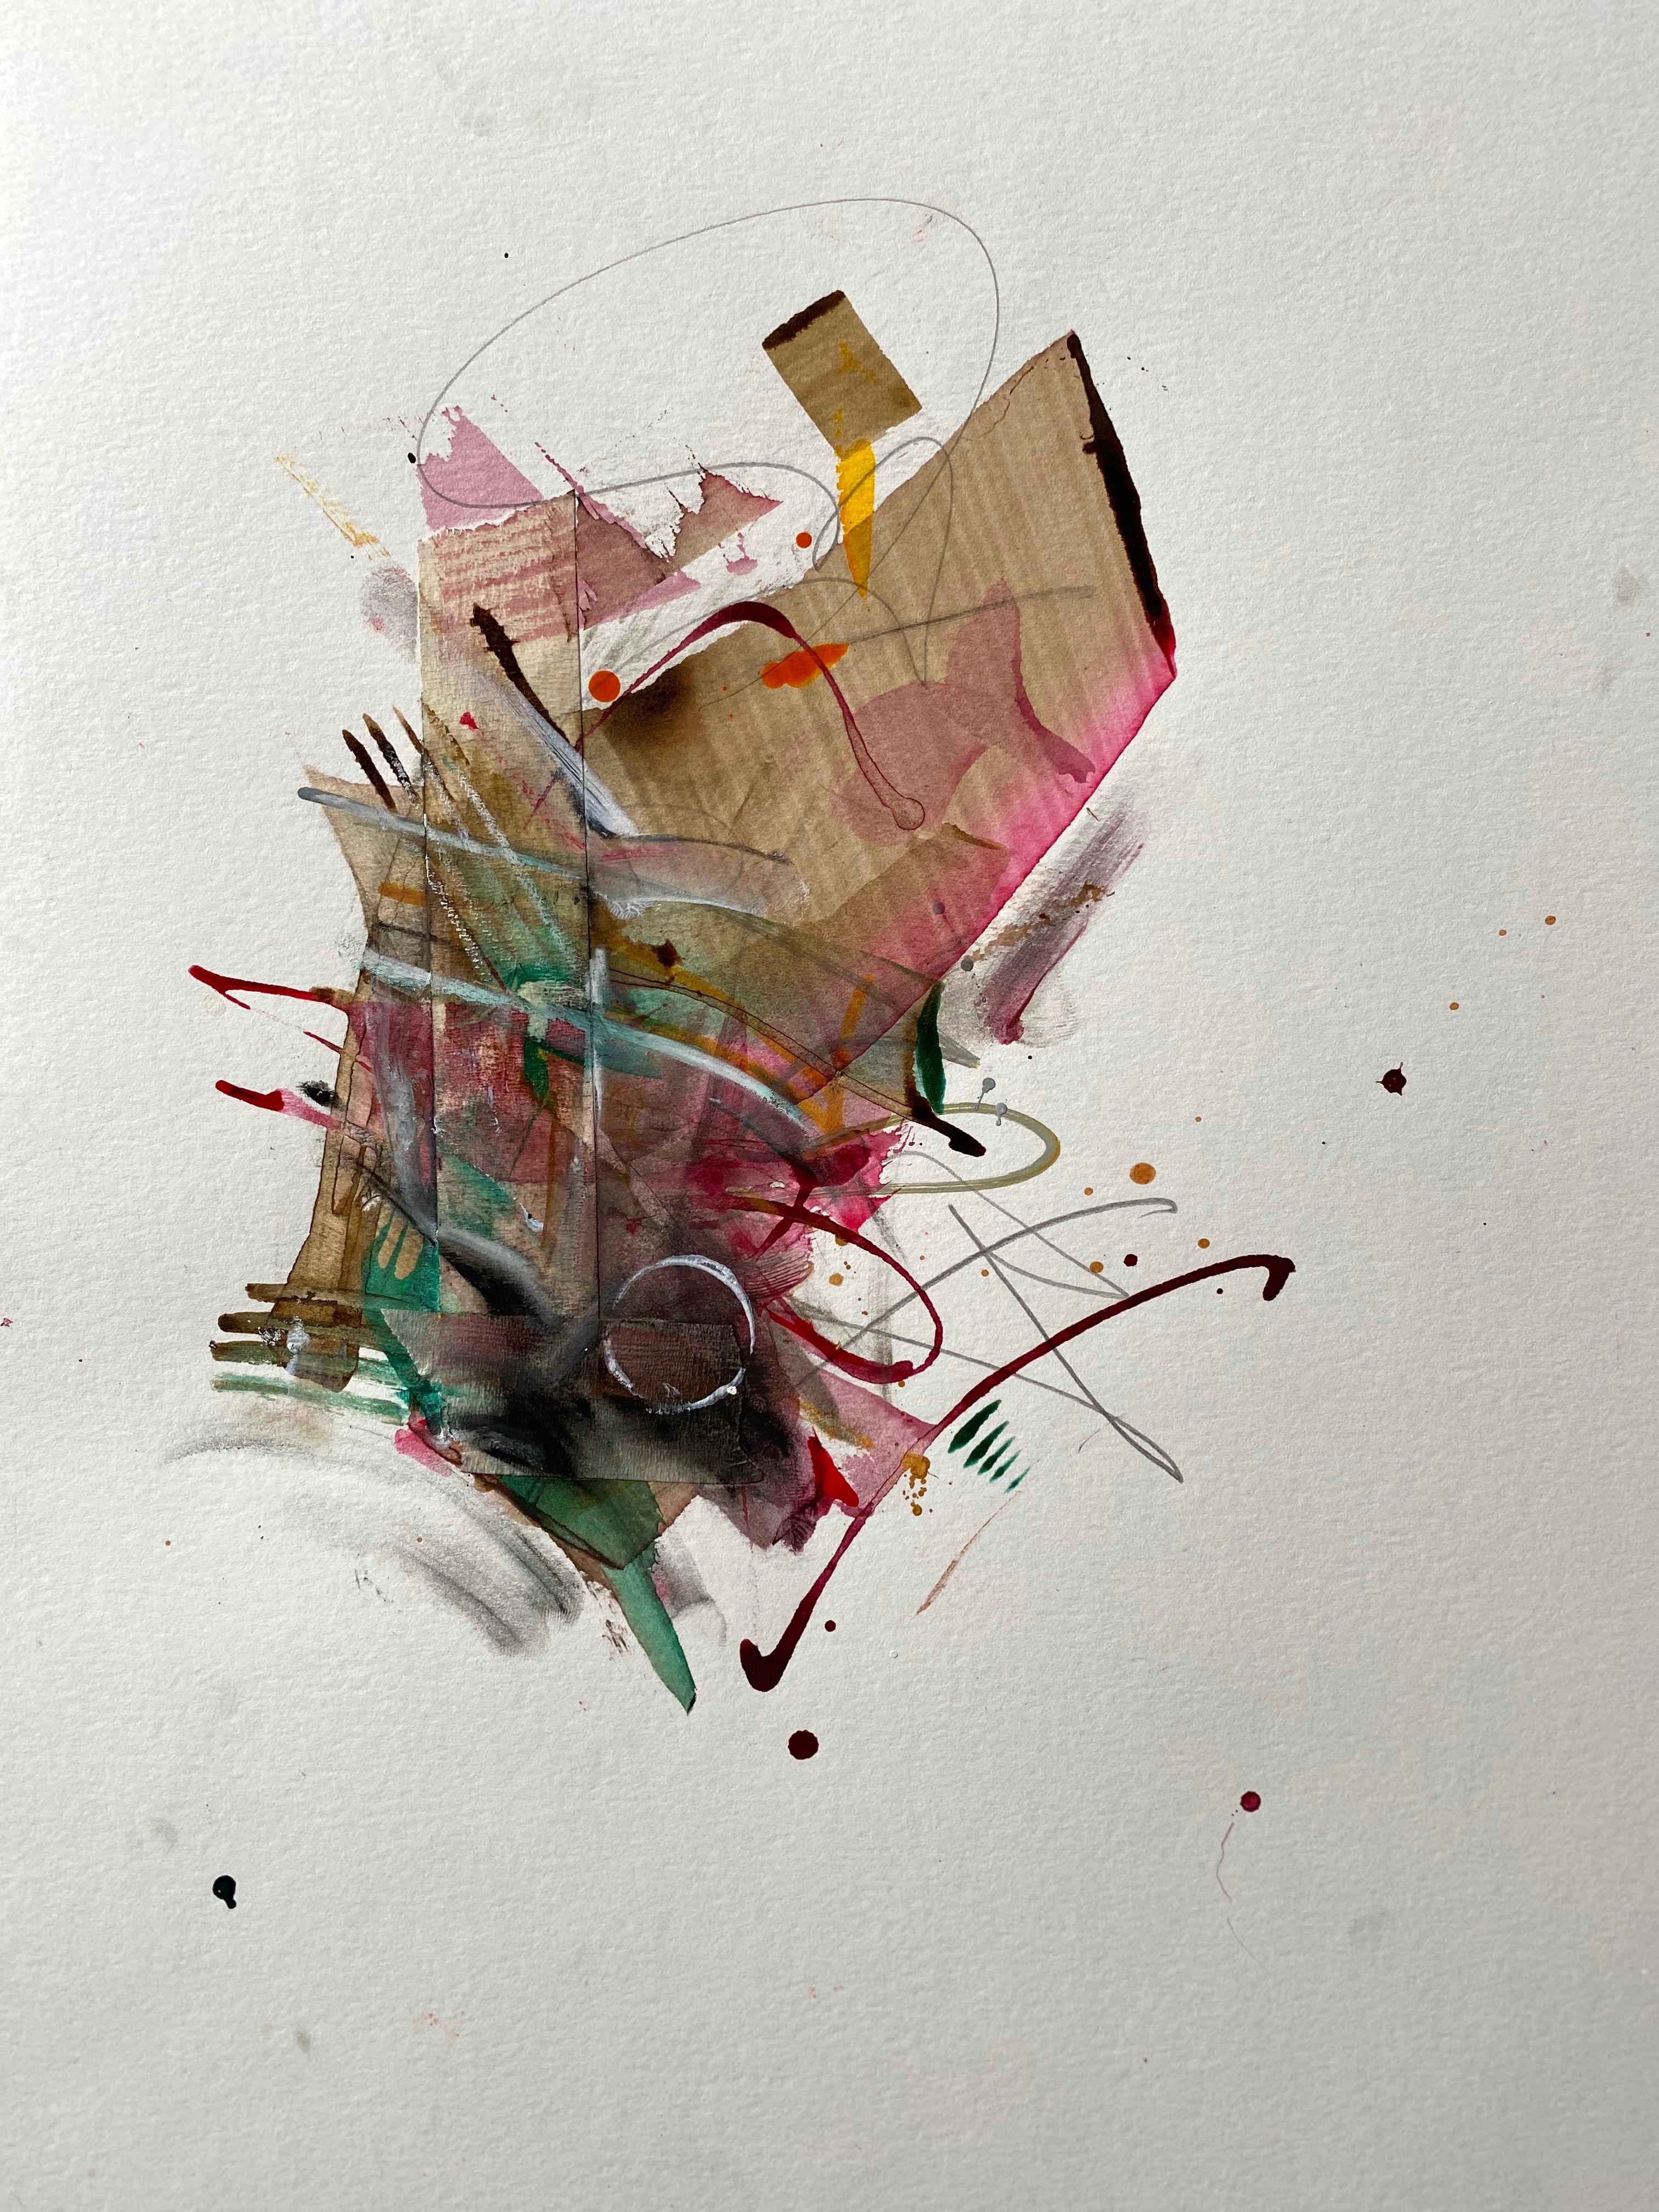 Framed Painting - Acrylic, gouache, ink, tape, graphite, on paper - Abstract